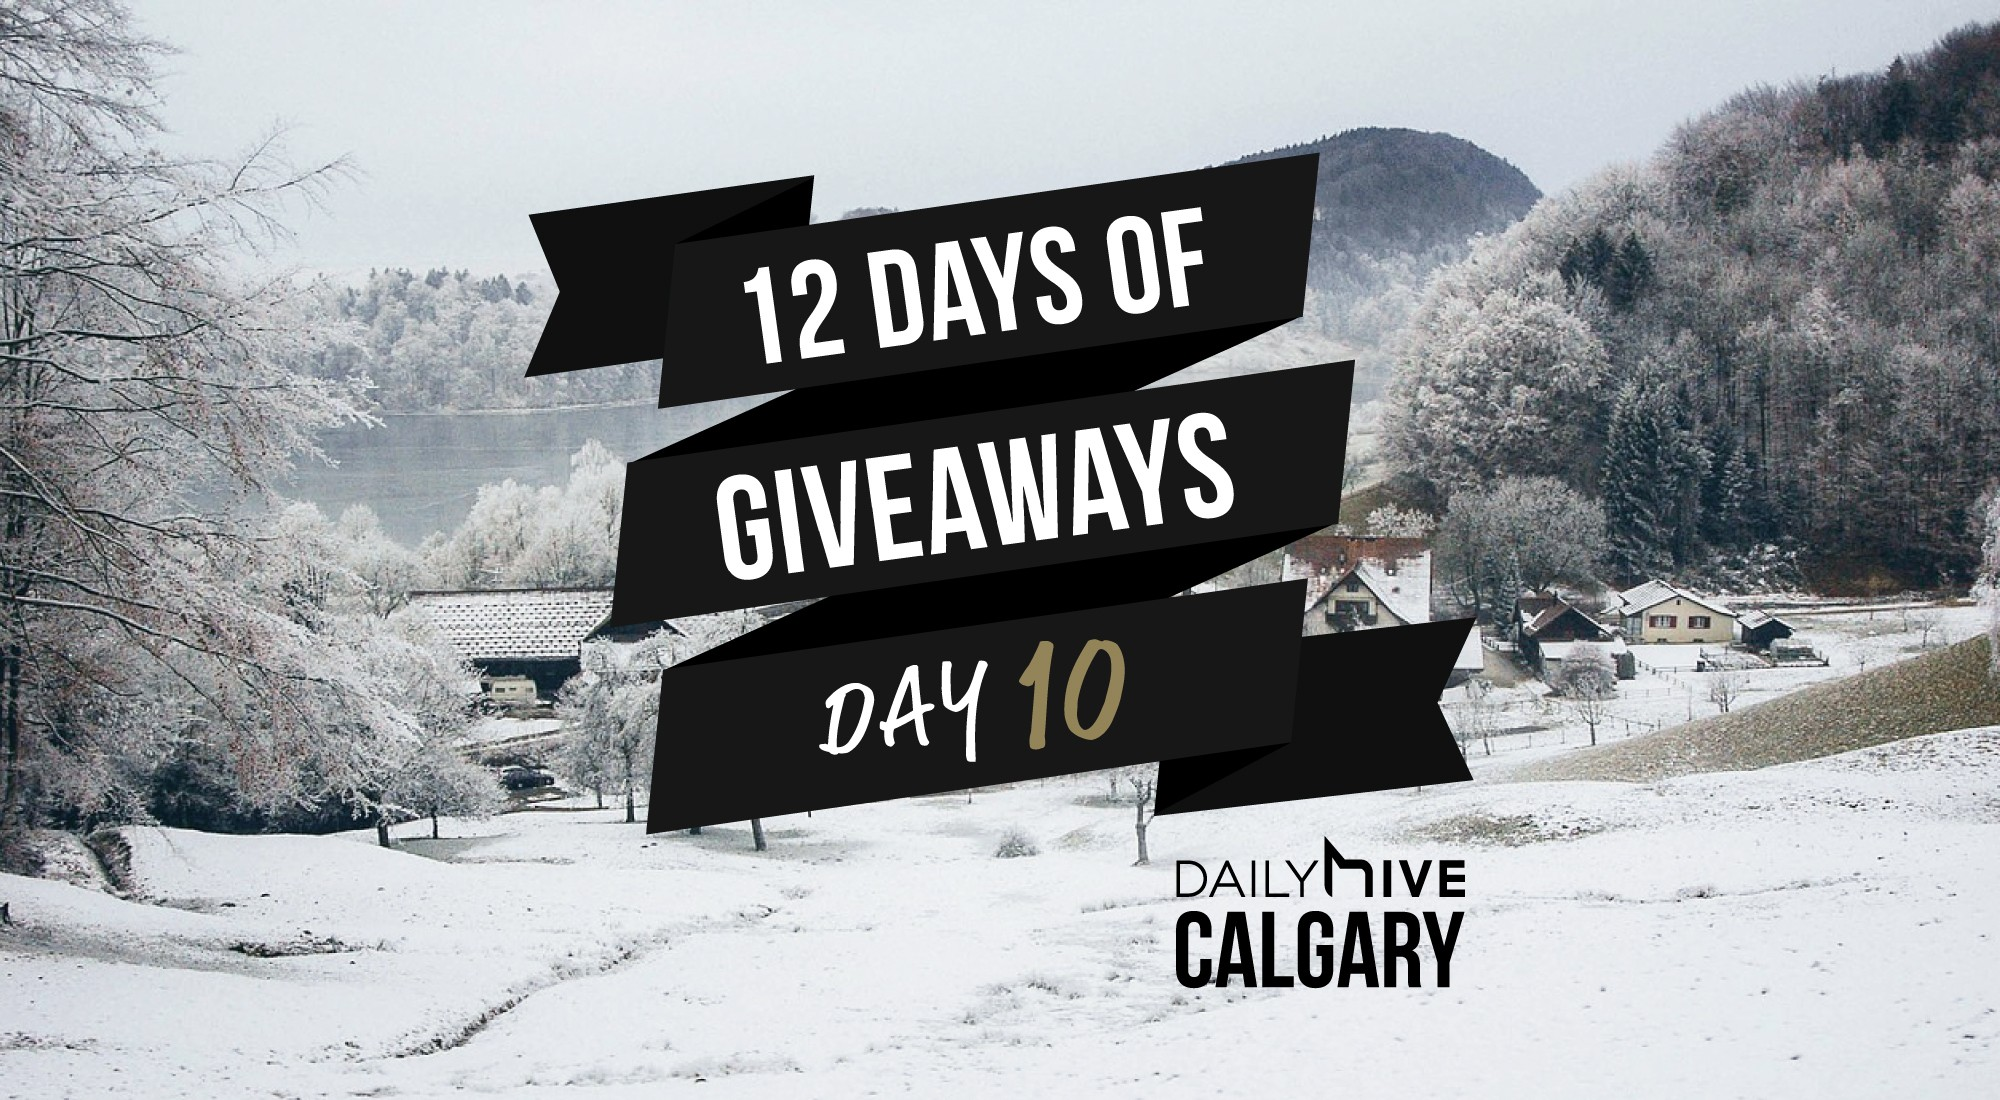 12 days of giveaways calgary 10